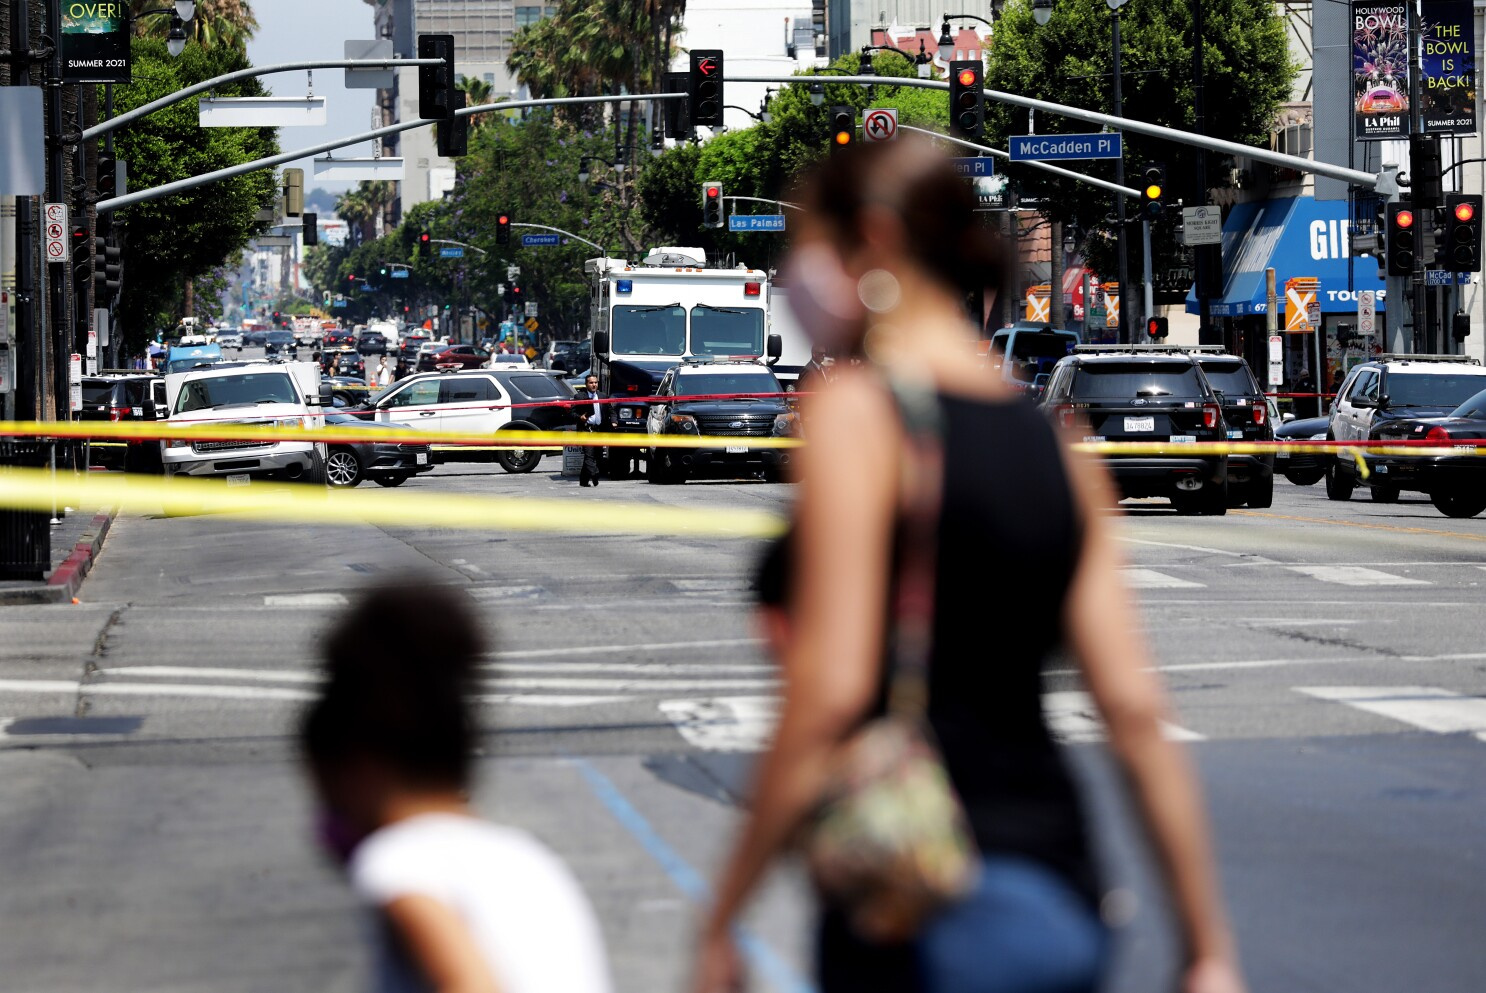 Shootings by LAPD officers rising again after years of decline